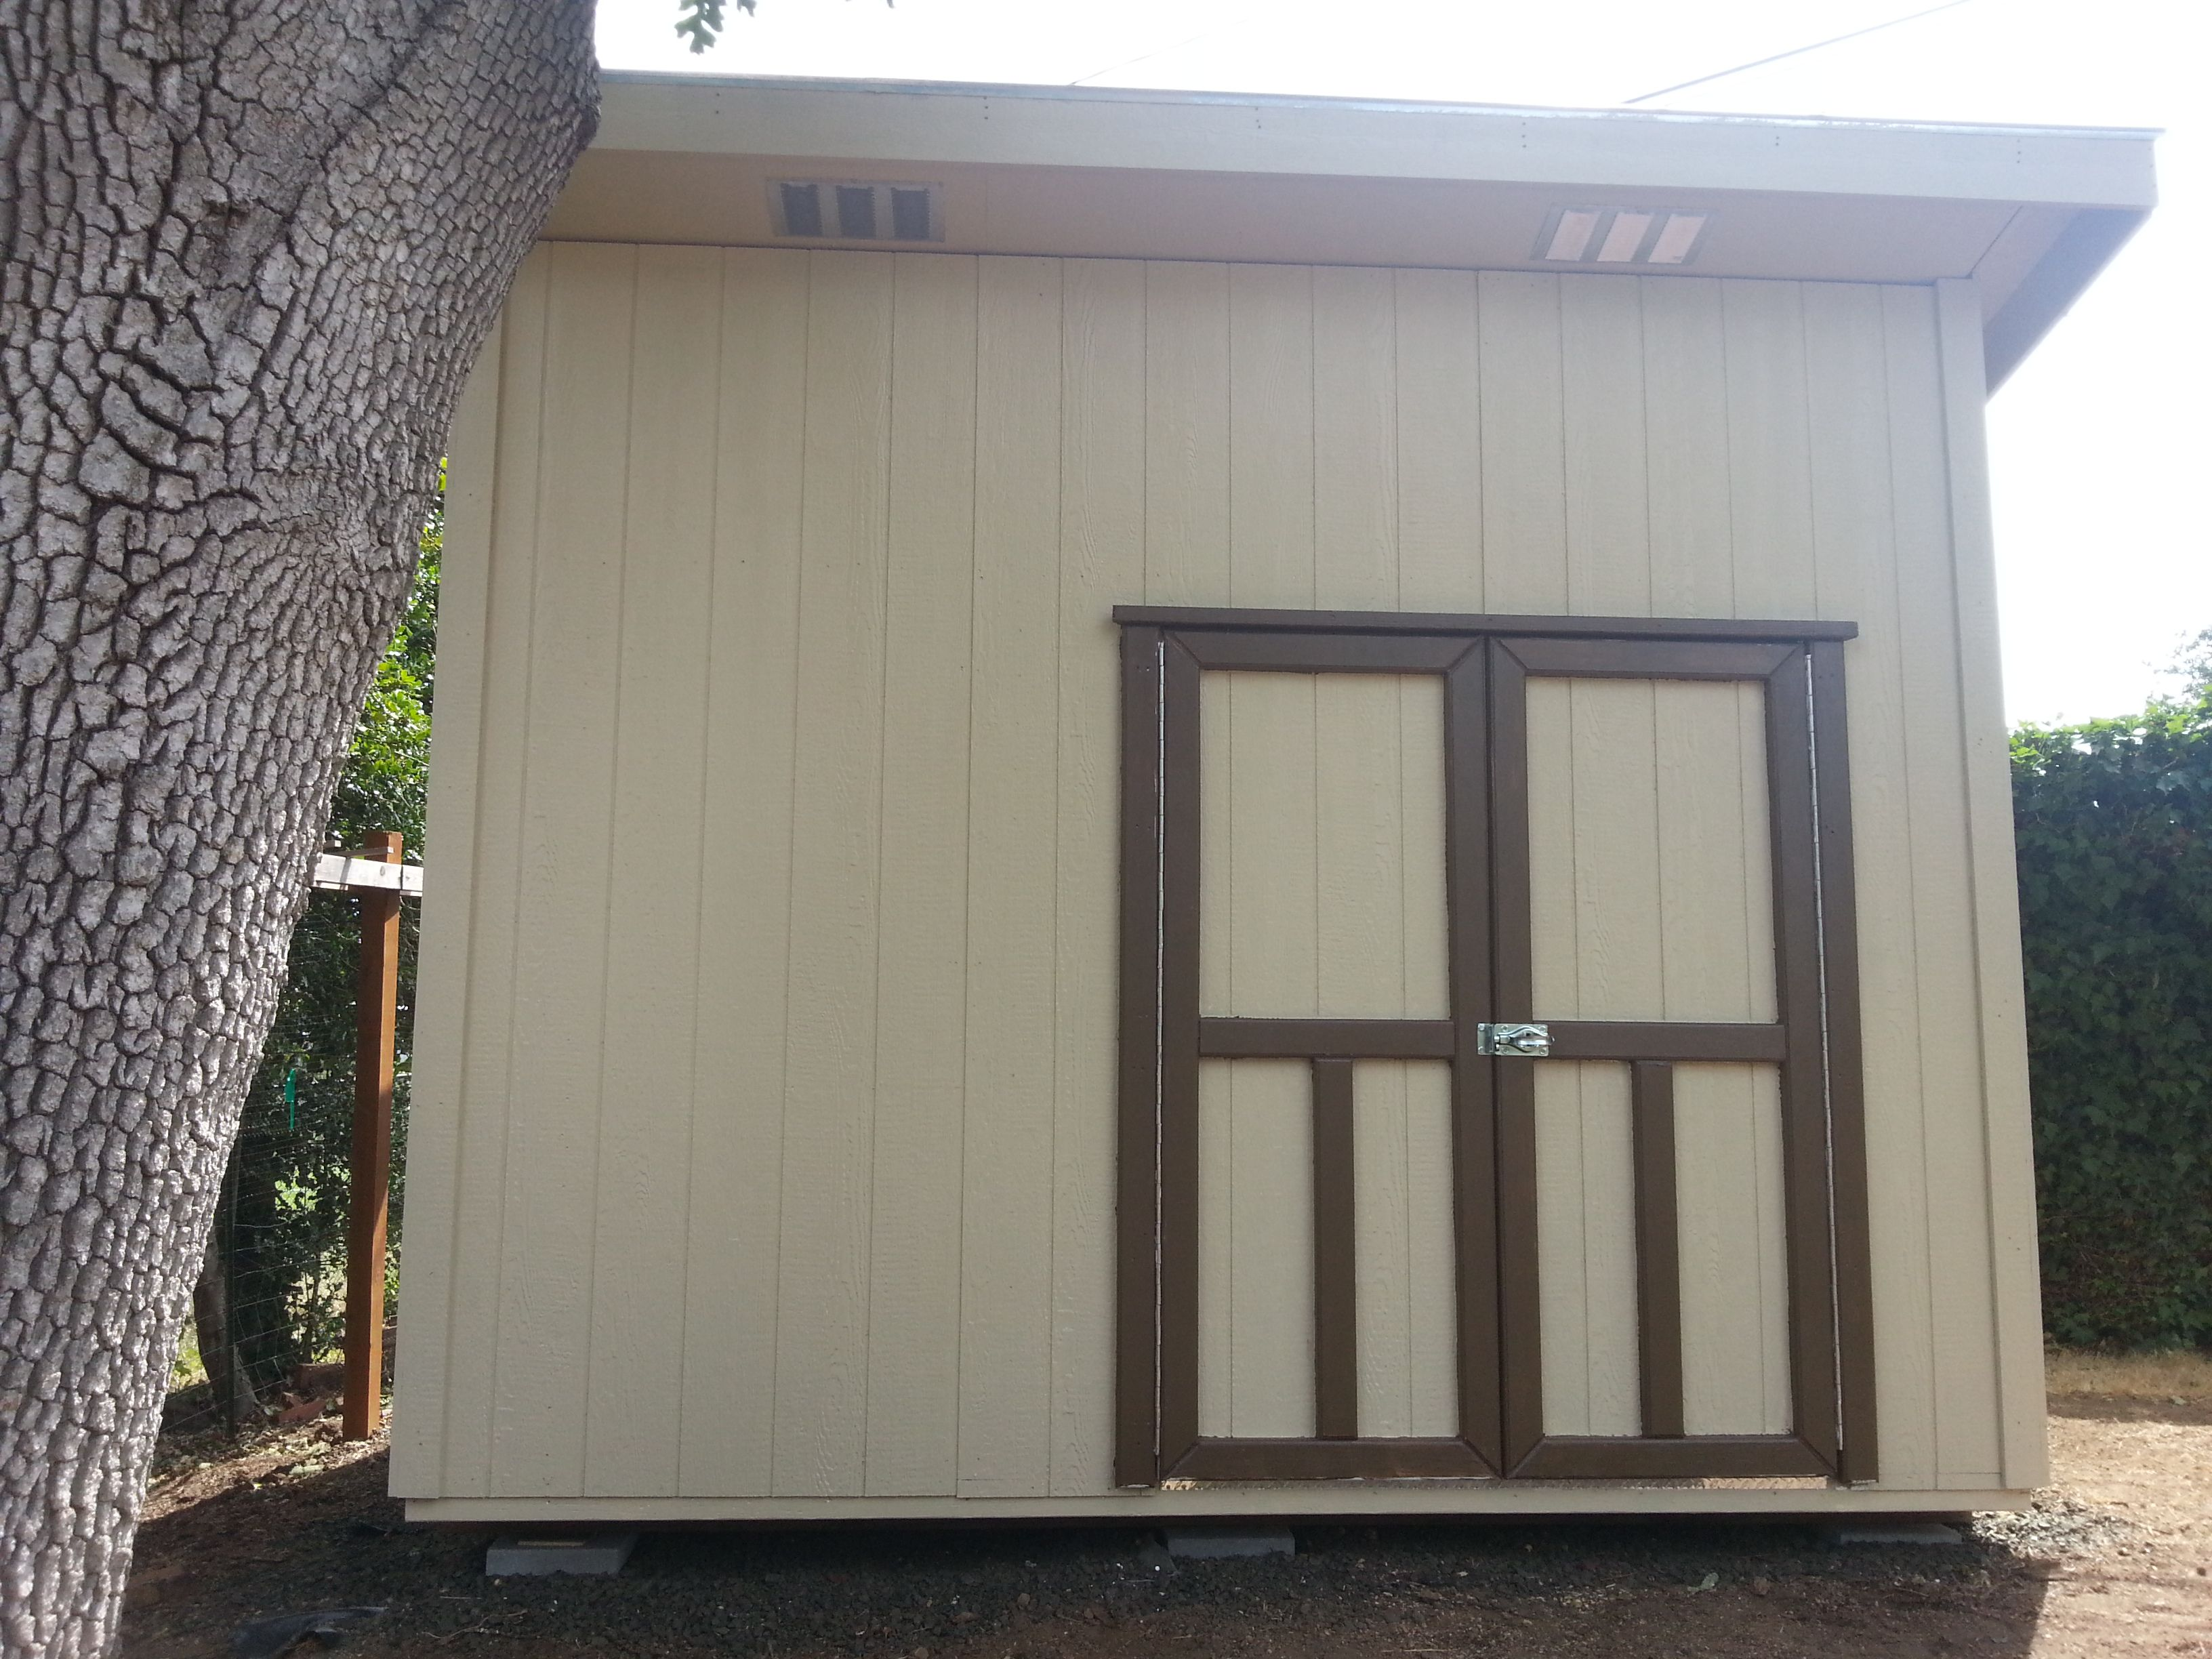 Slant Roof Style With One Pair Of Rectangular Soffit Vents. Storage, Garden  Shed,